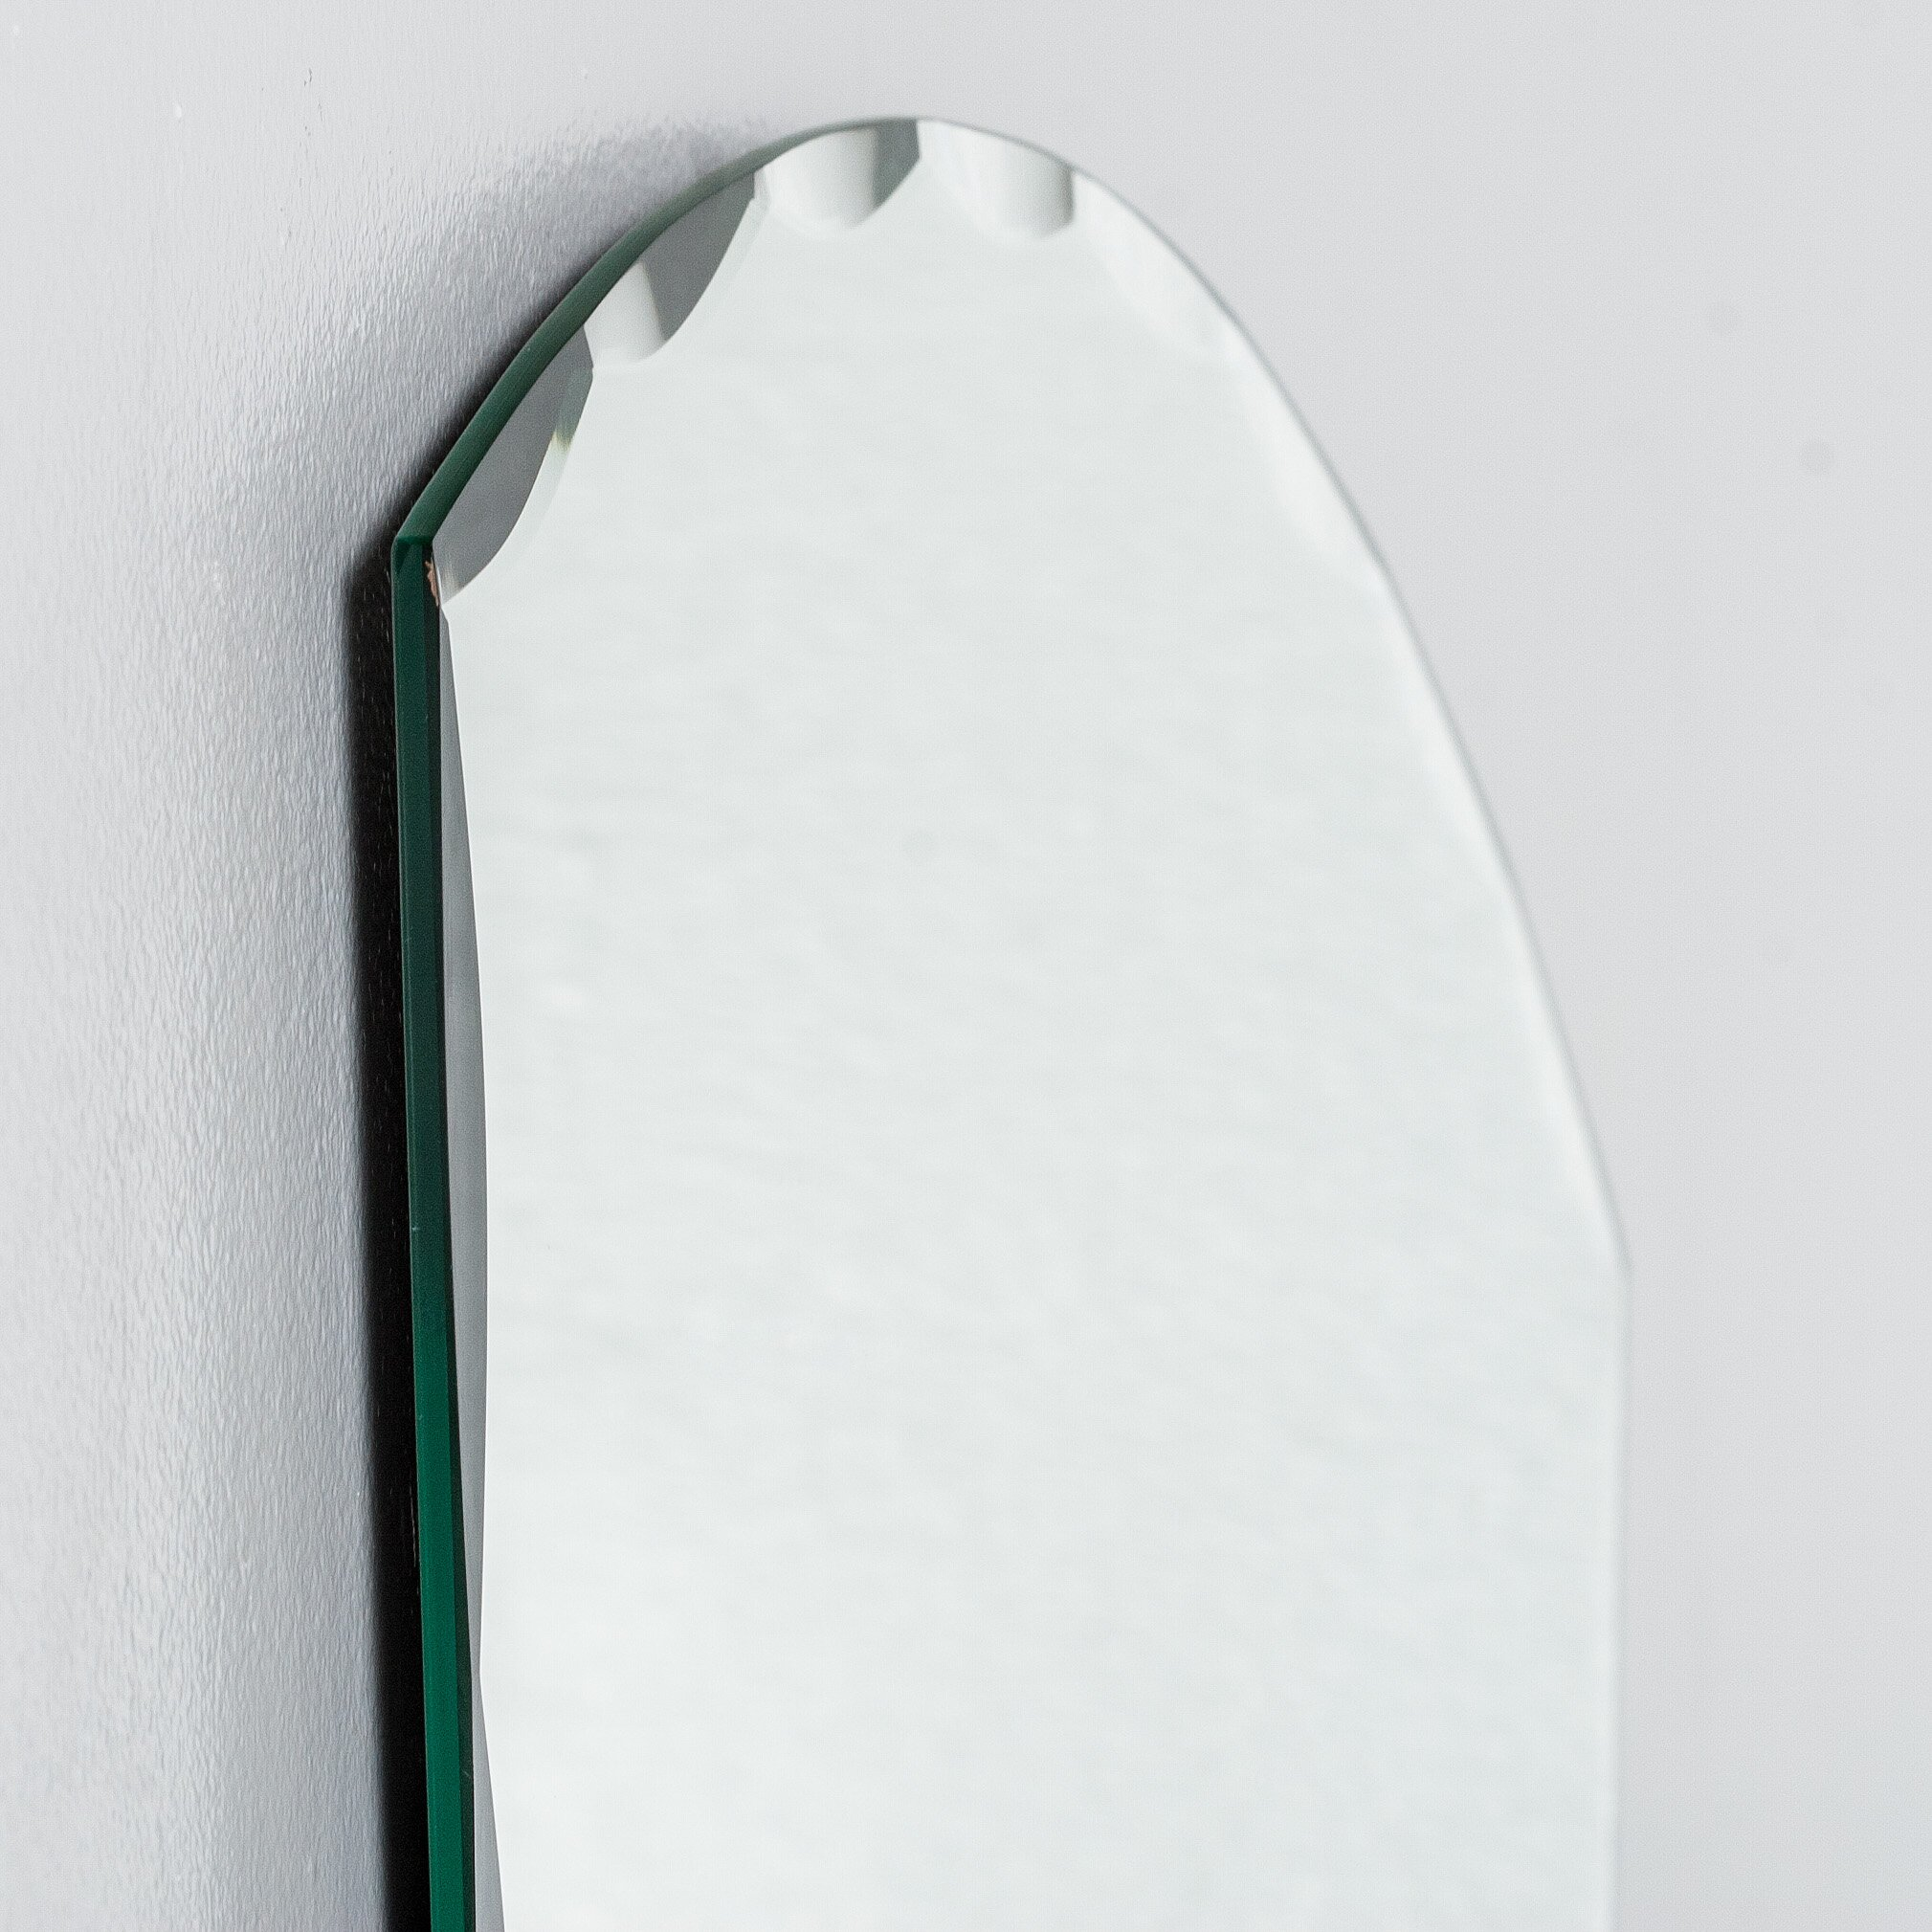 Paris modern wall mirror reviews allmodern for All modern accessories